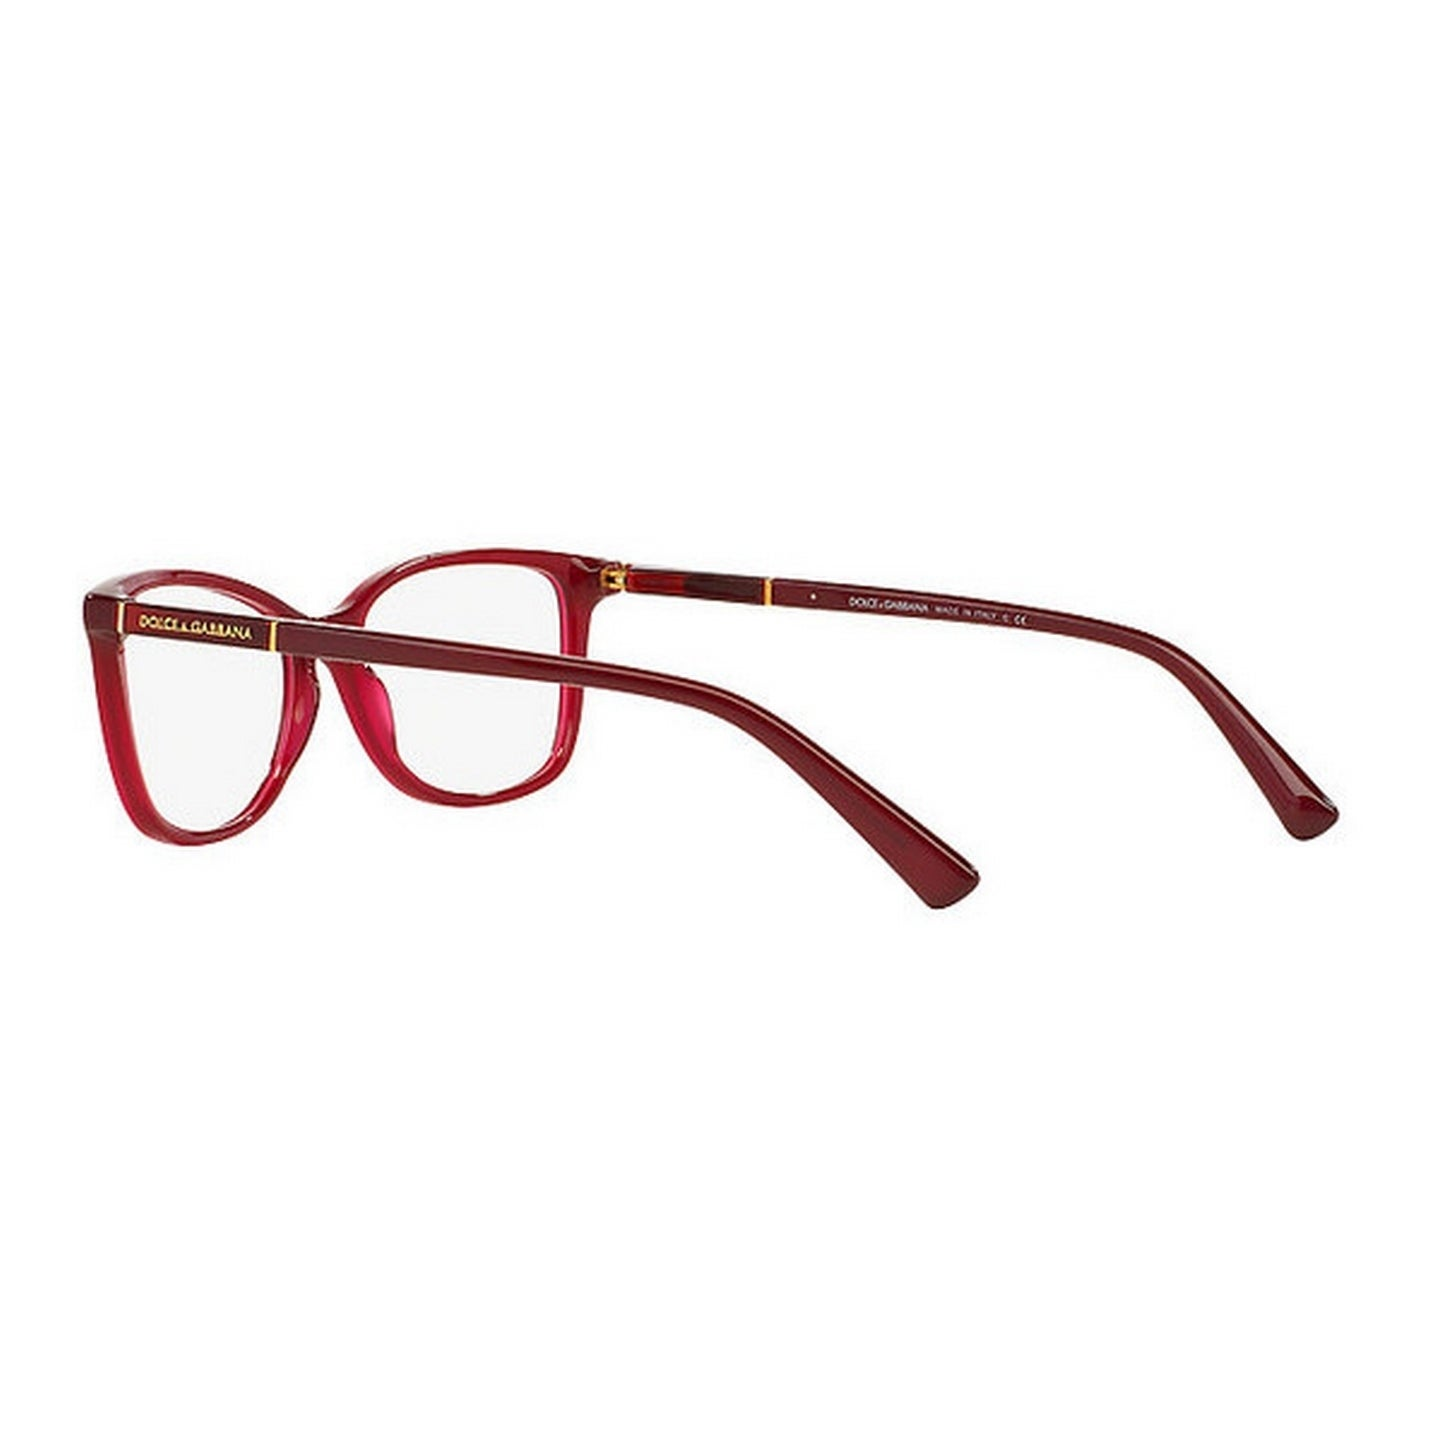 7d02b6eadf0 Shop Dolce   Gabbana Women s DG3219 2681 55 Square Plastic Red Clear  Eyeglasses - Free Shipping Today - Overstock - 14799374